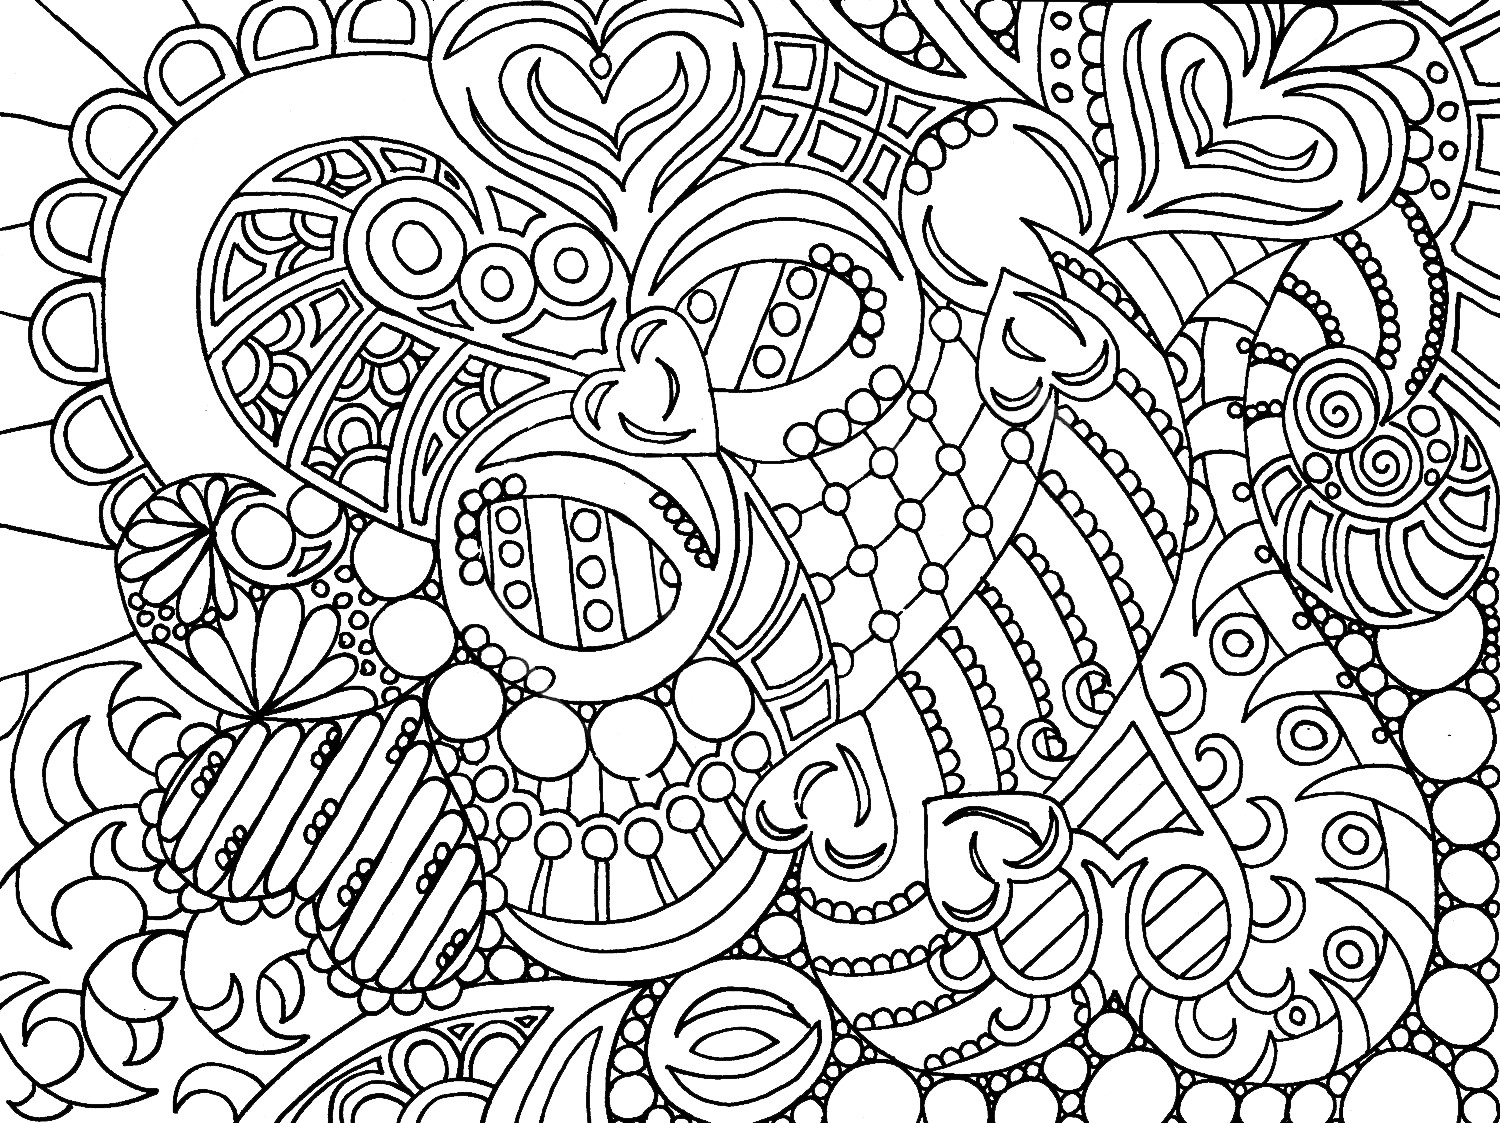 Best ideas about Free Printable Coloring Sheets For Adults . Save or Pin free coloring pages for adults Now.